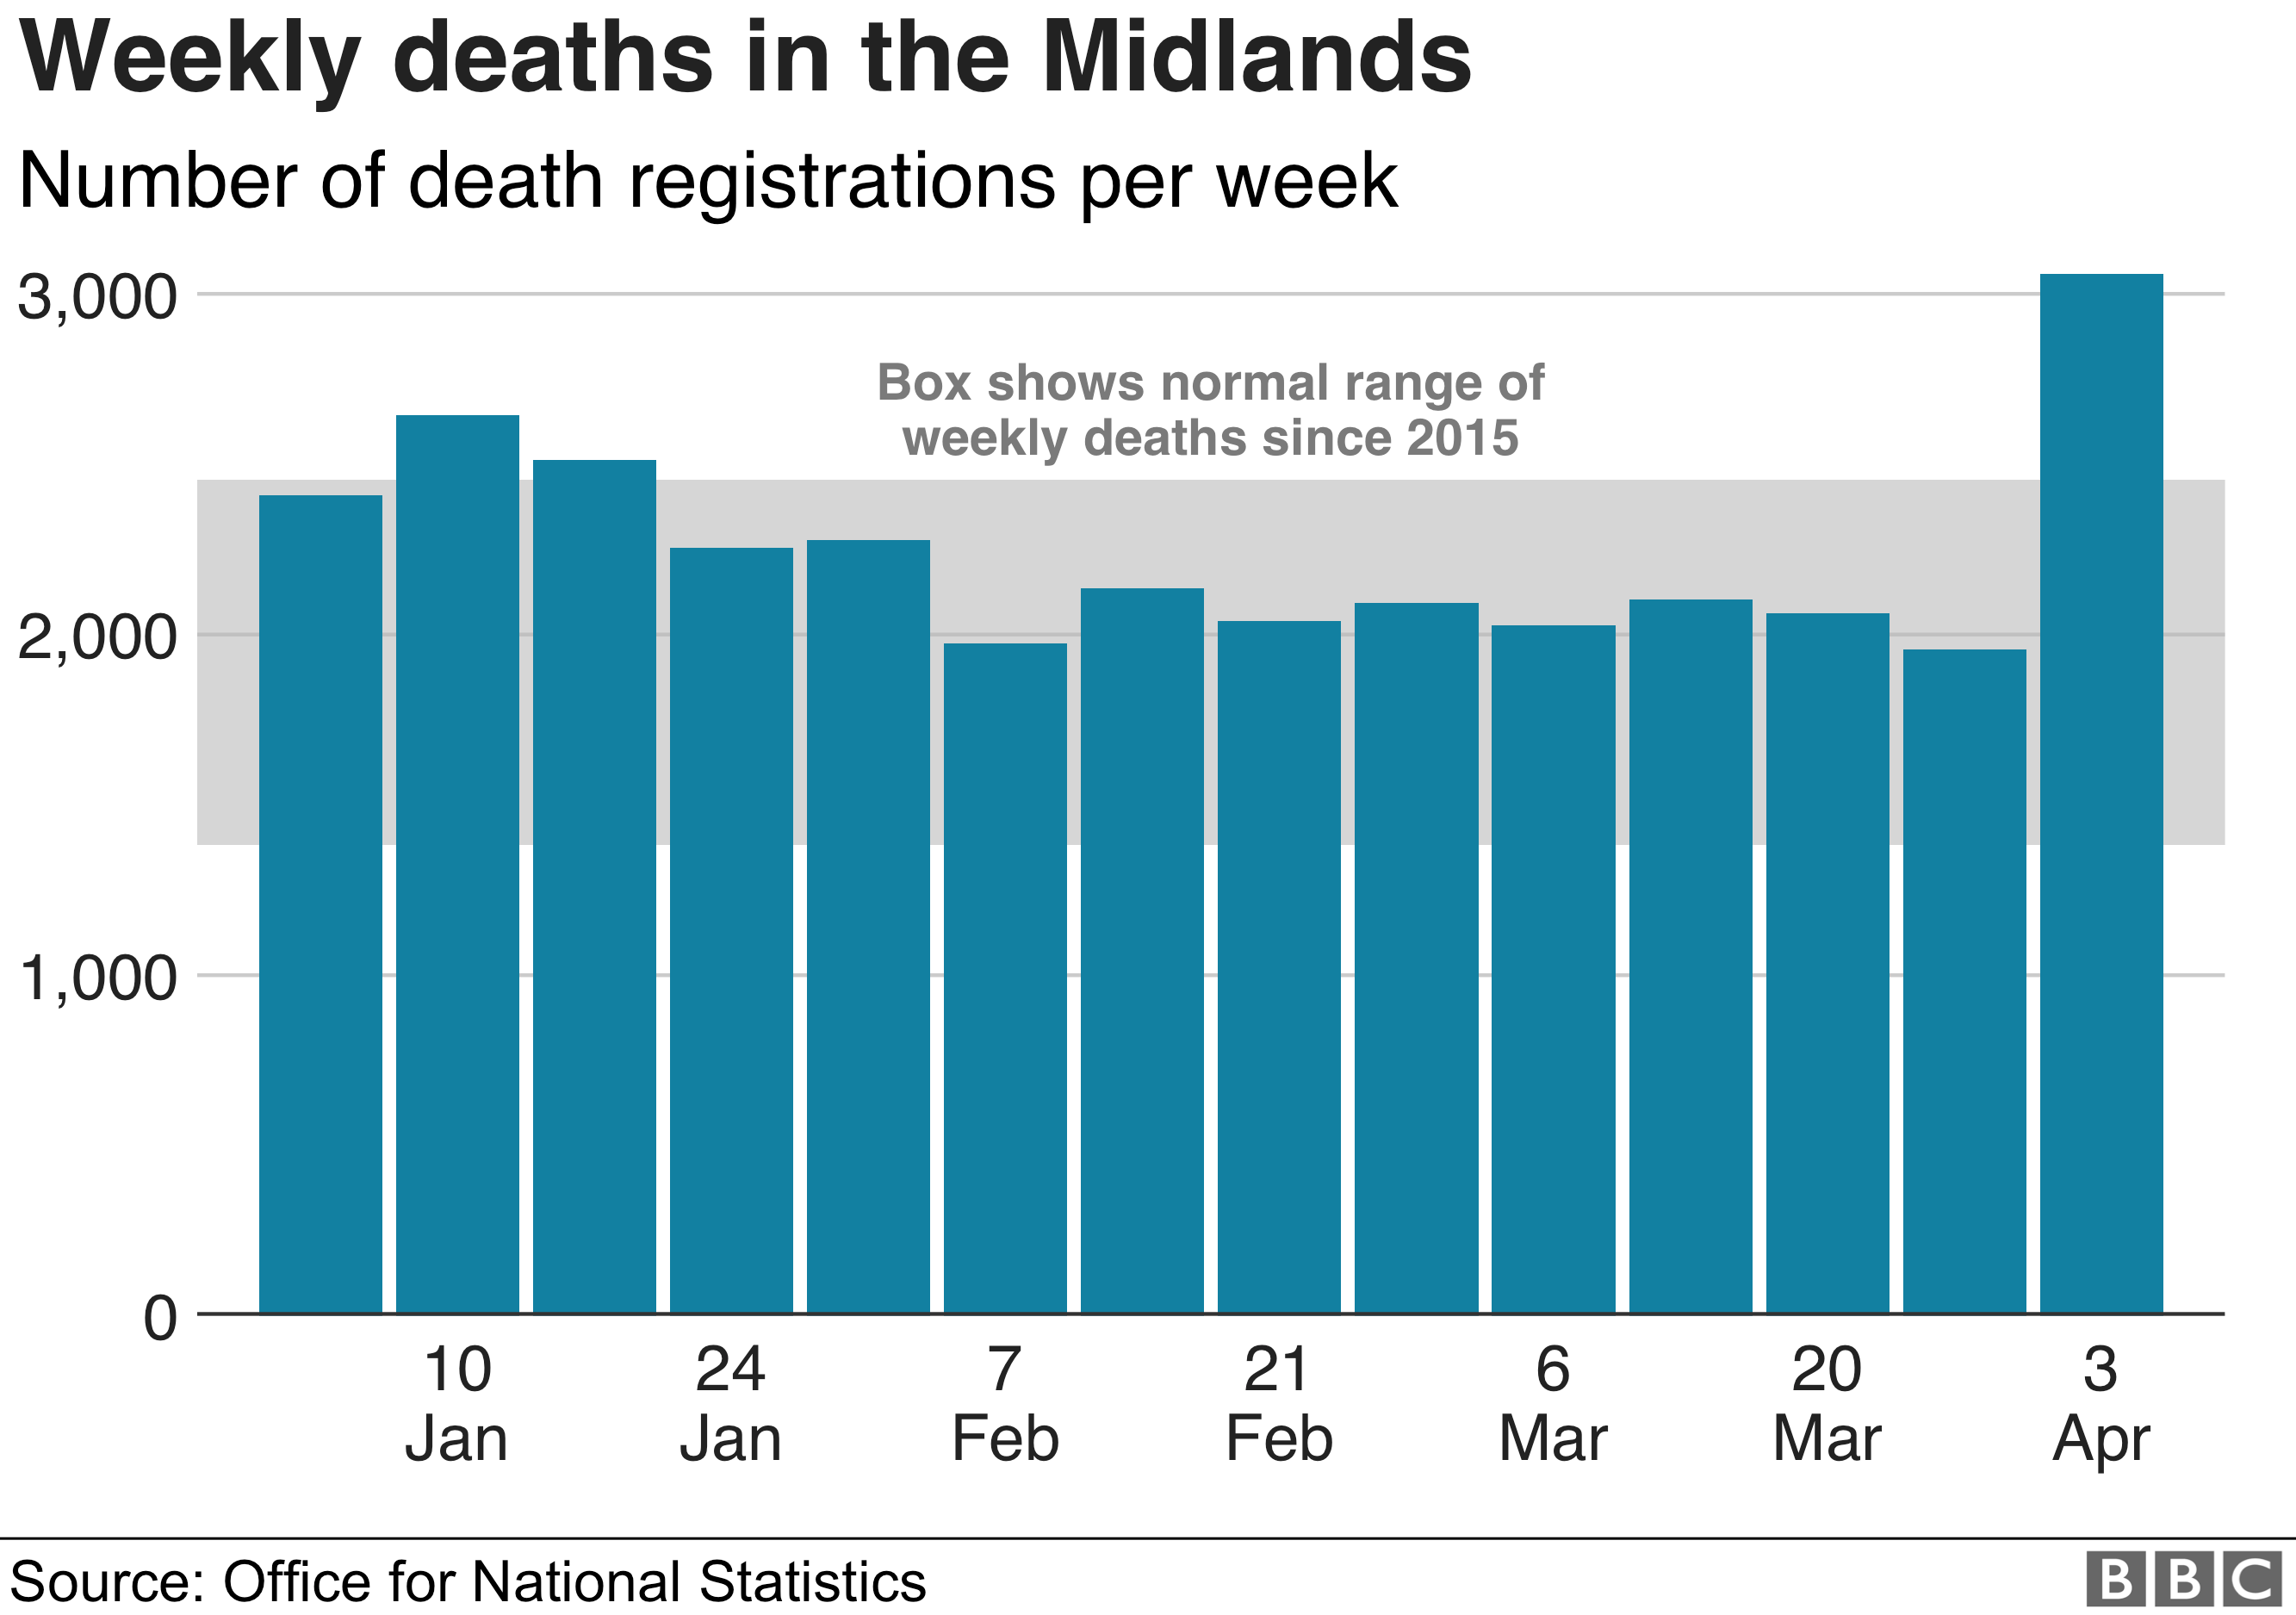 3,058 deaths were registered in the Midlands in the week to 3 April